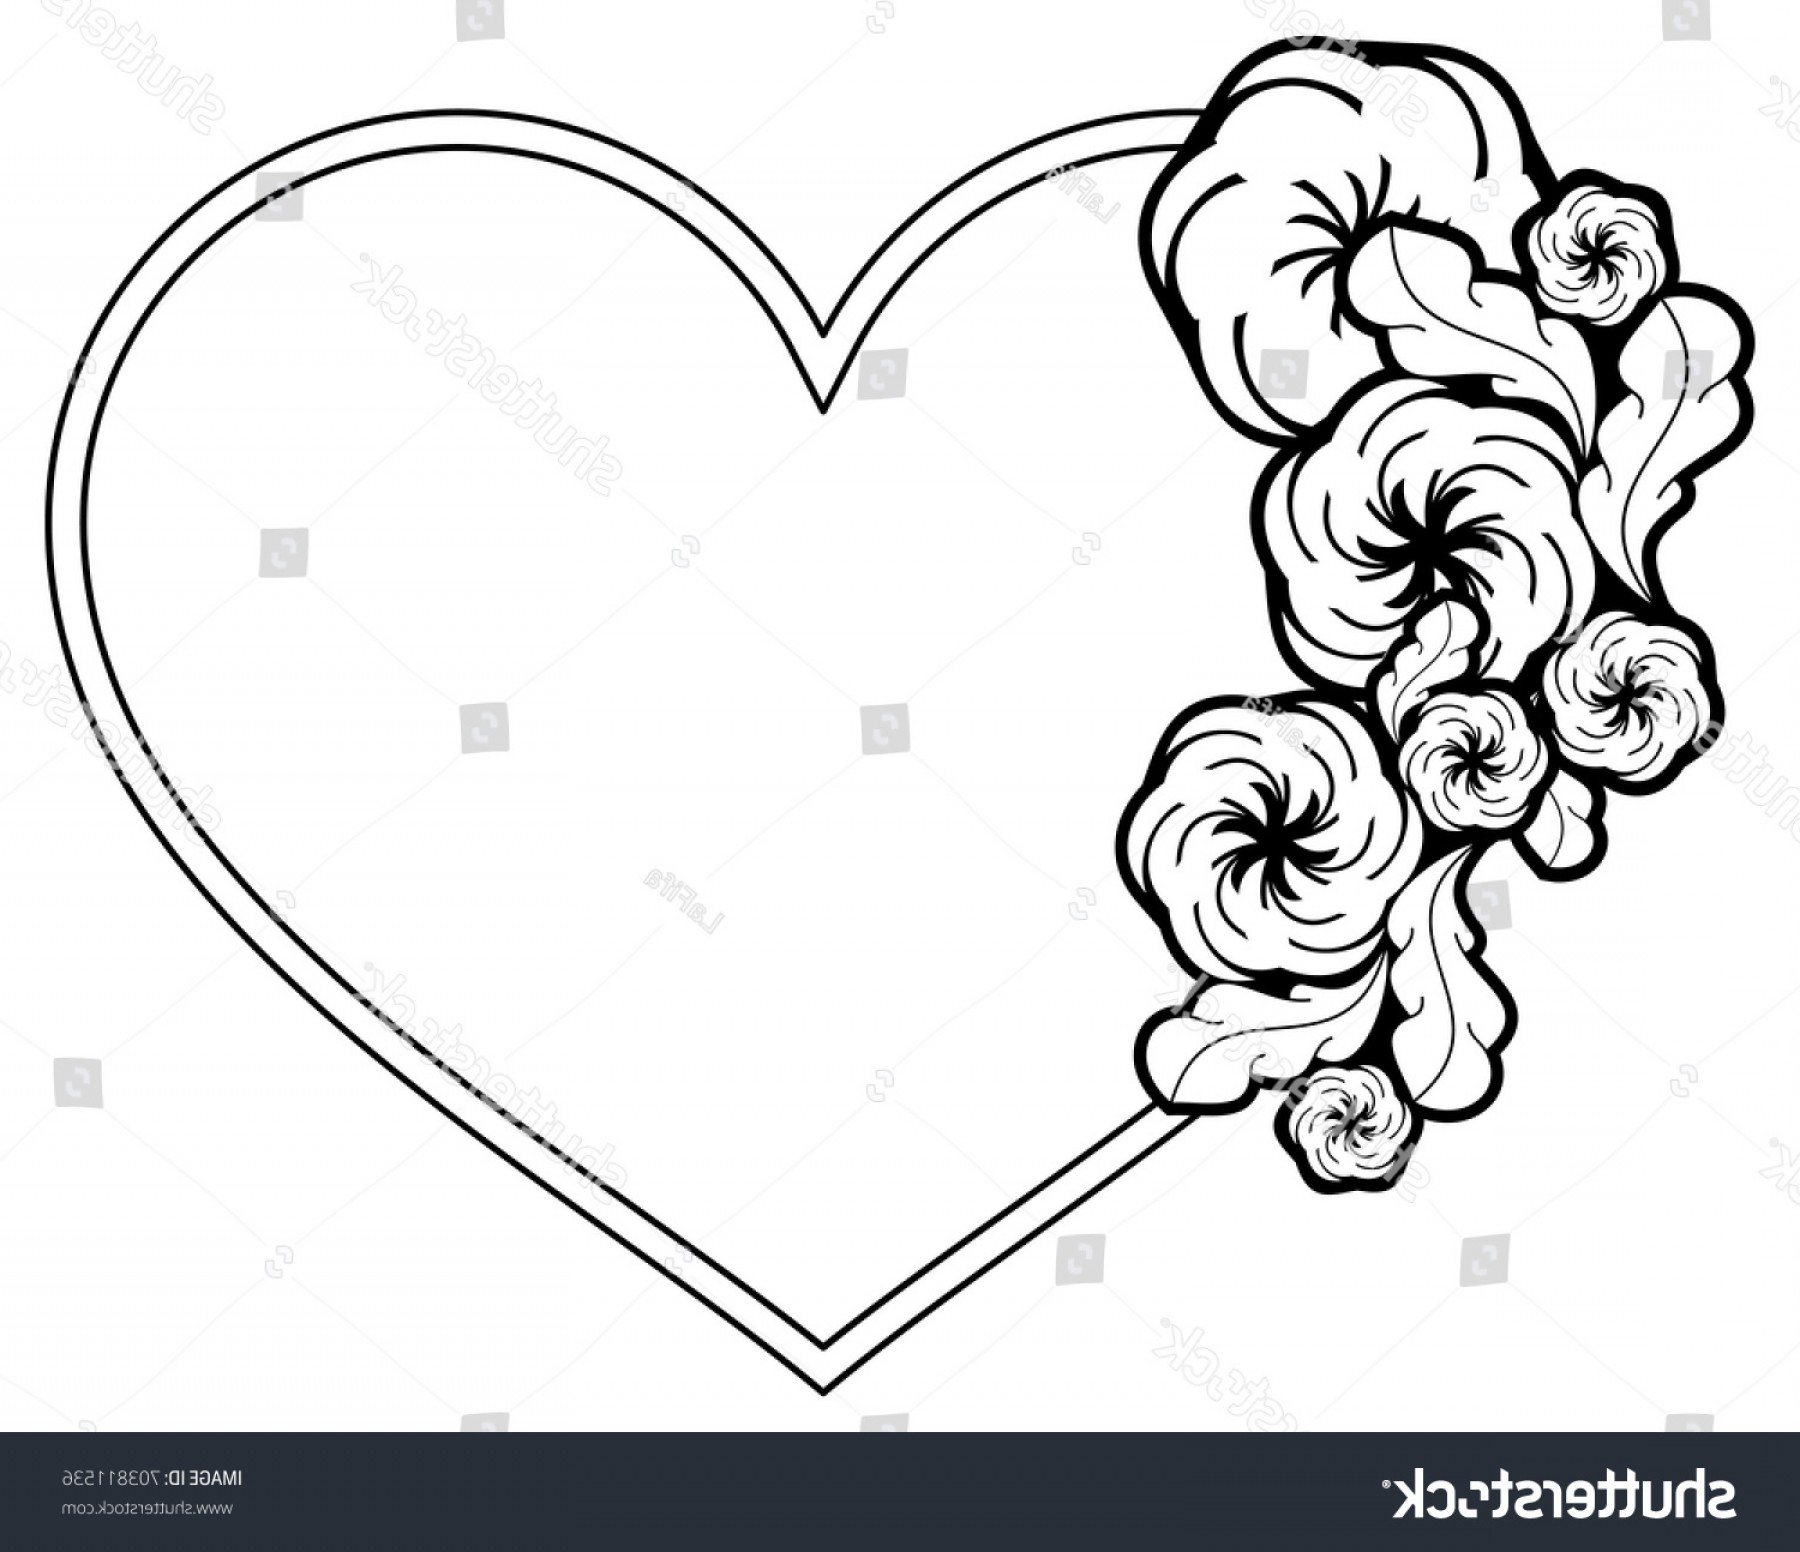 Heart shaped outline flowers. Flower frame and hearts clipart black and white